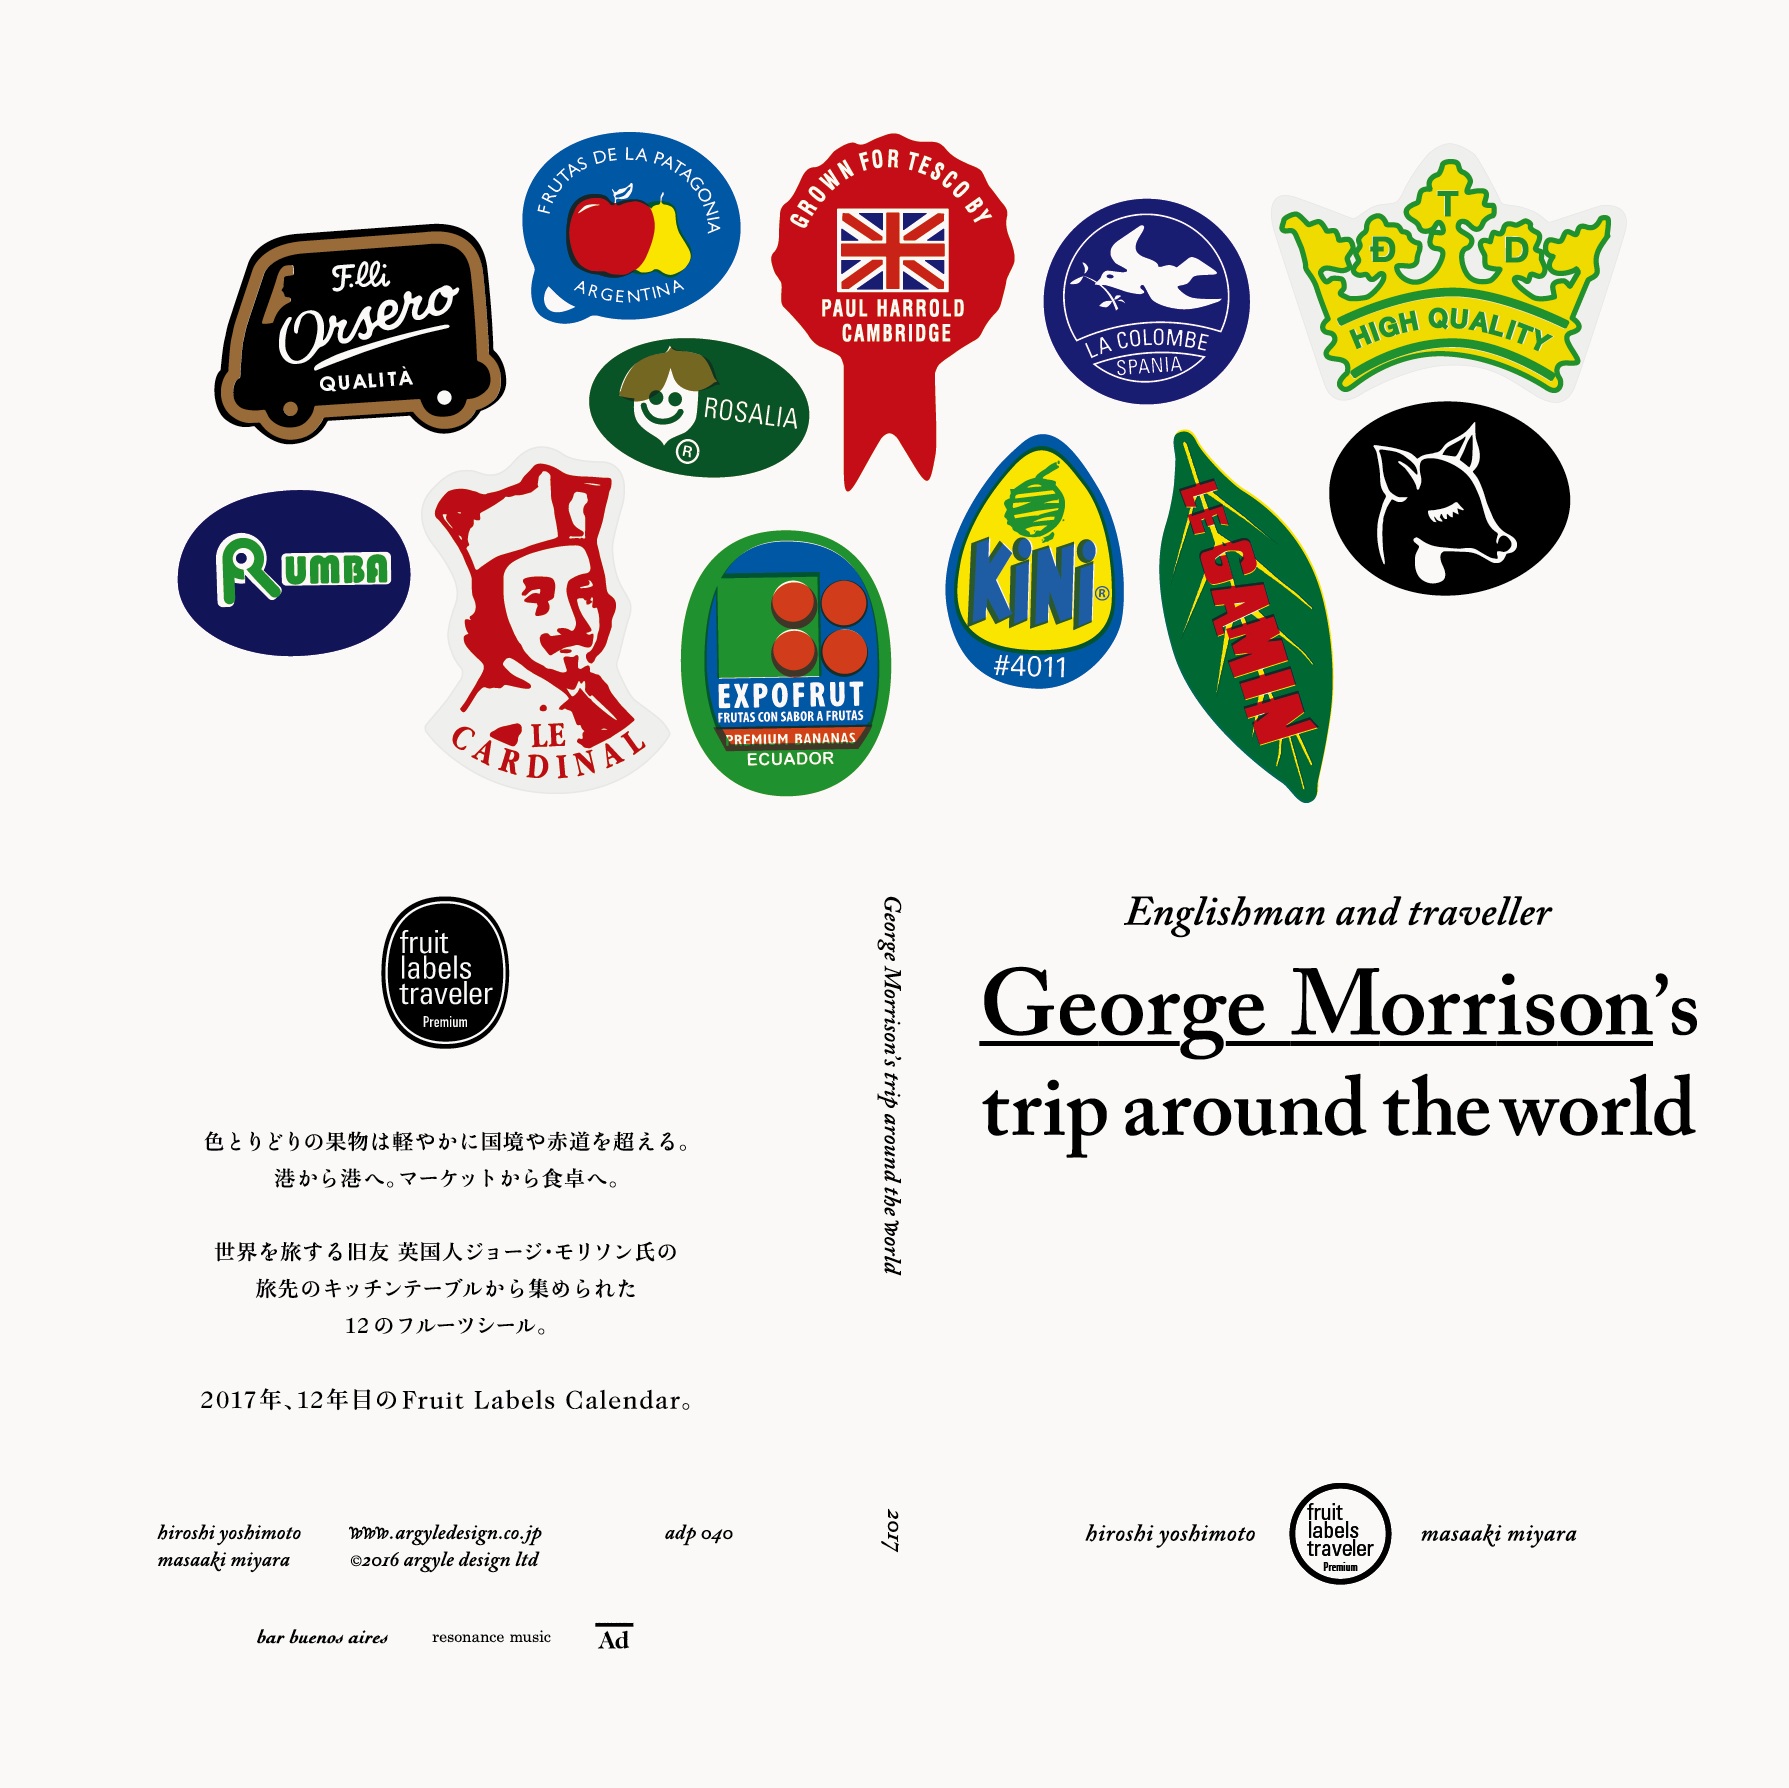 George Morrison's Trip Around the World